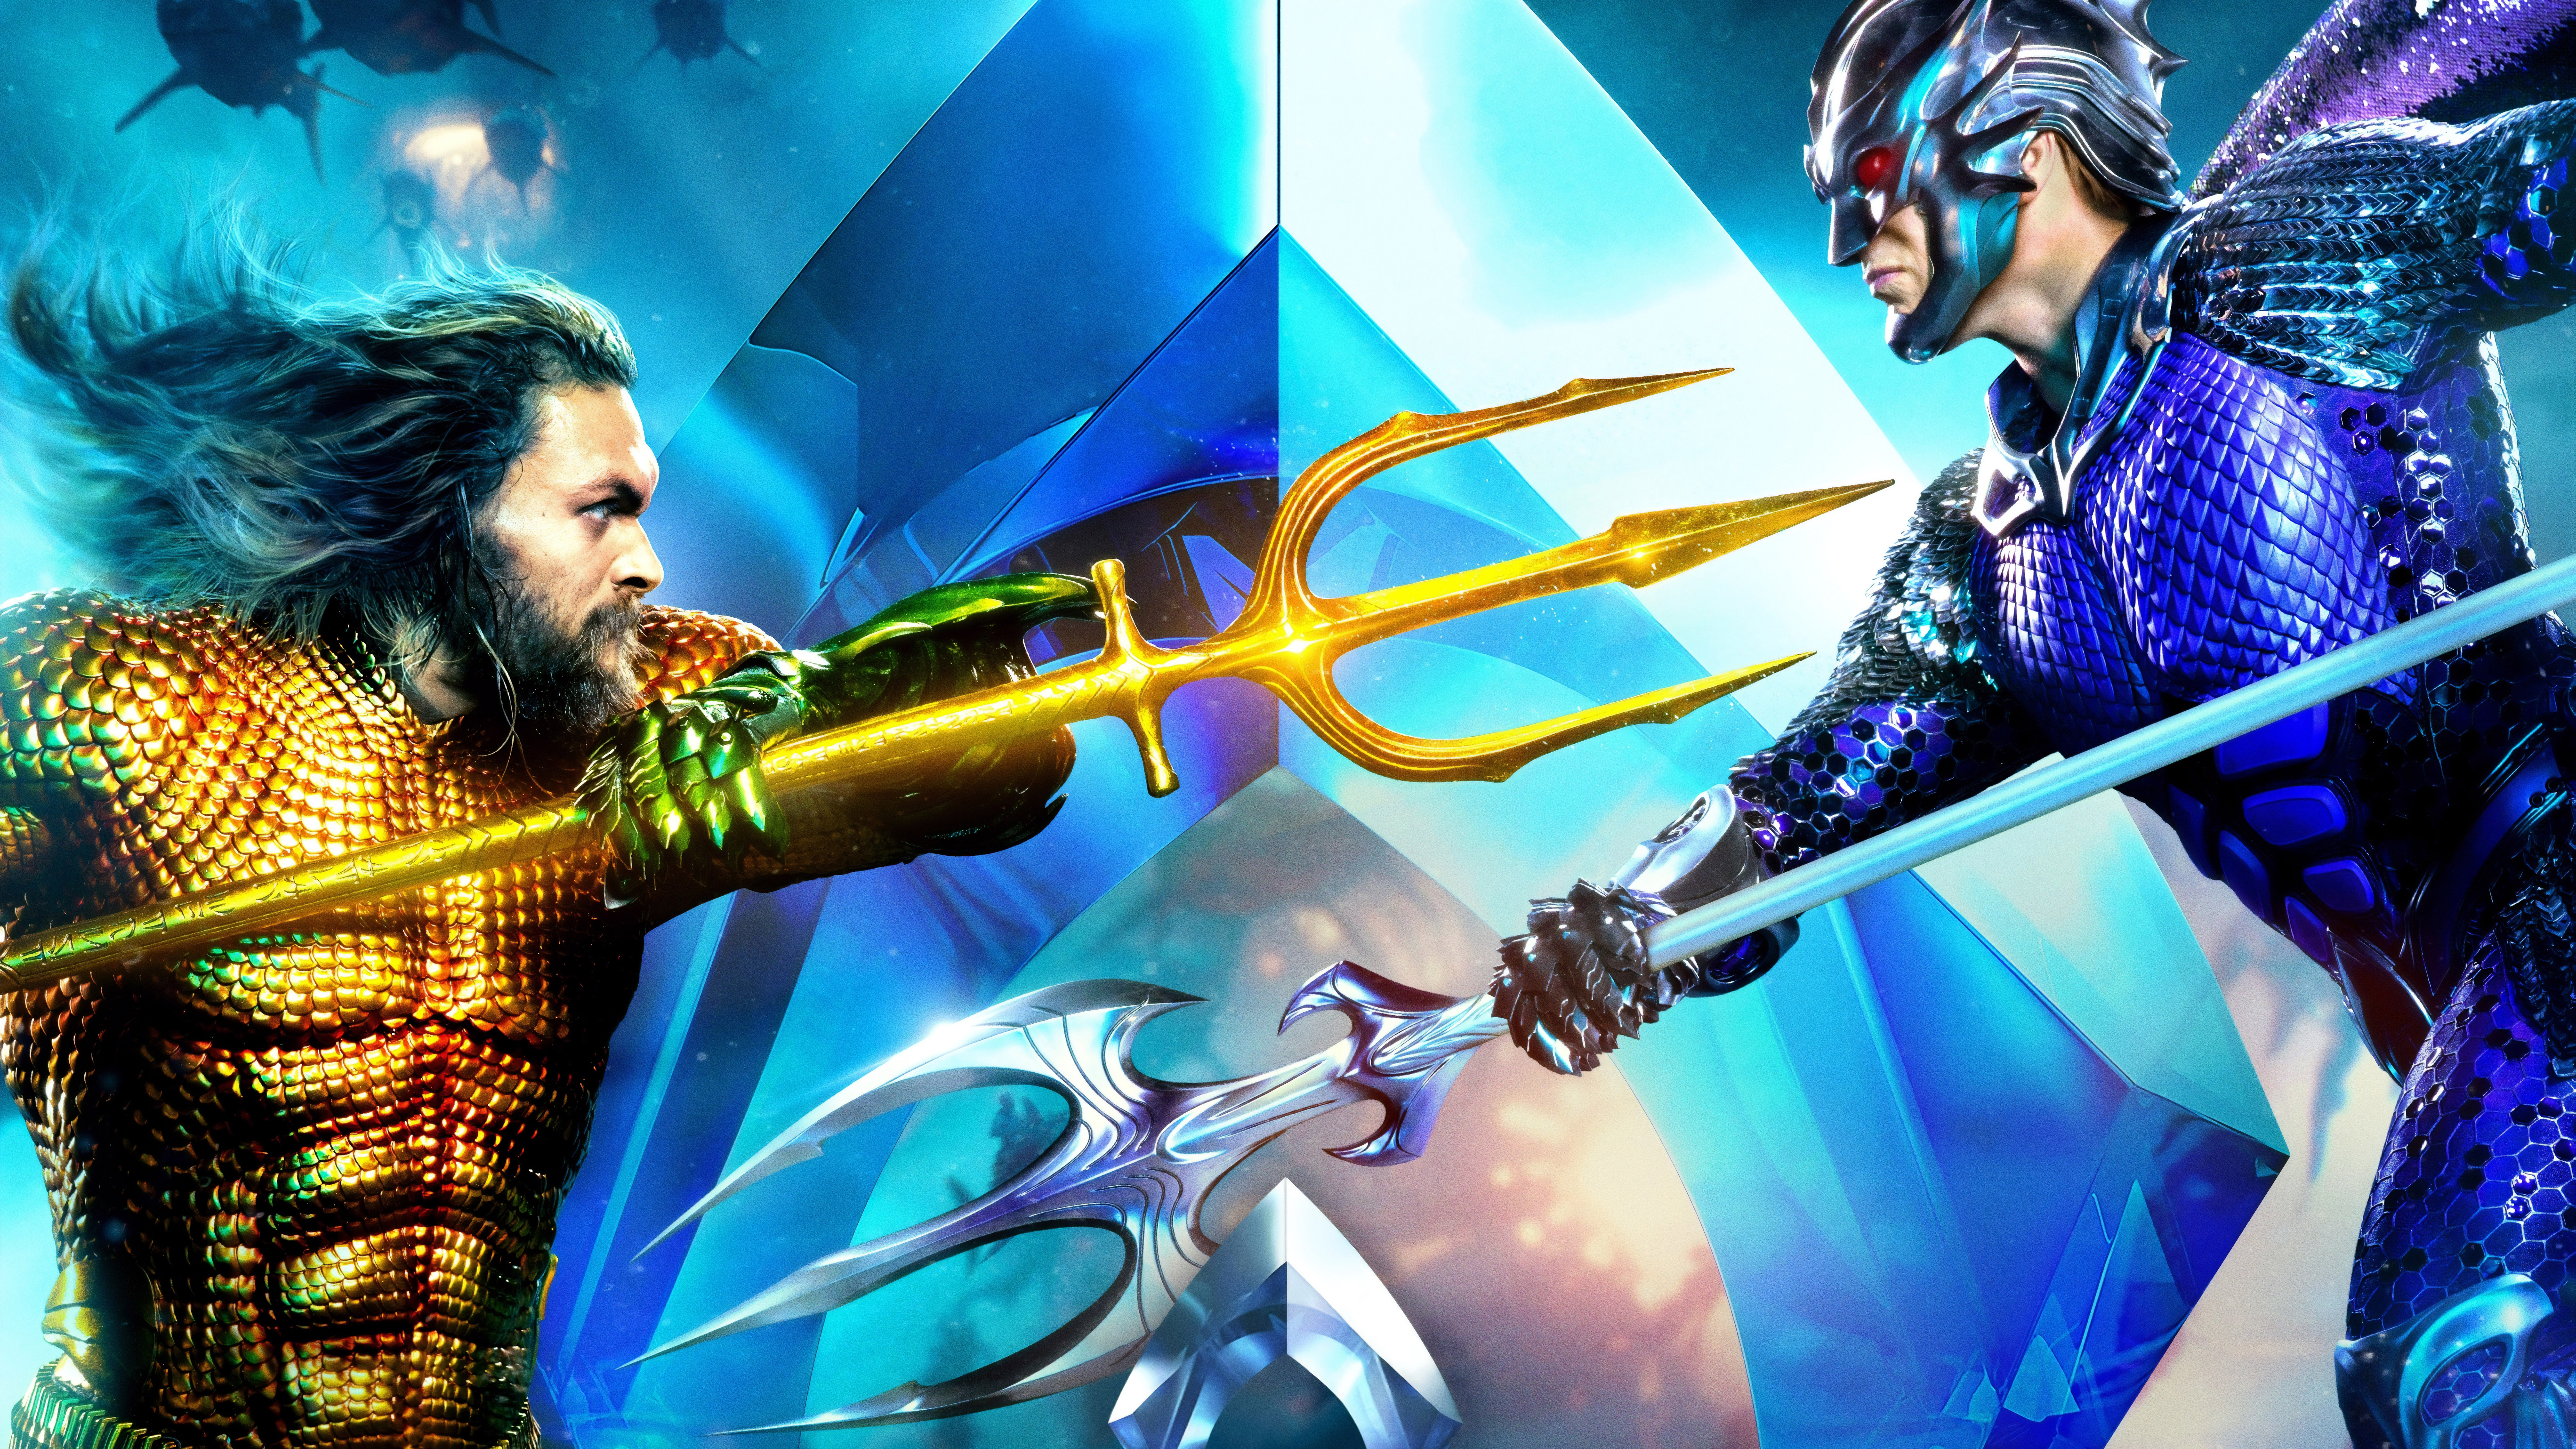 Aquaman Vs King Orm 4k 8k Wallpapers Hd Wallpapers